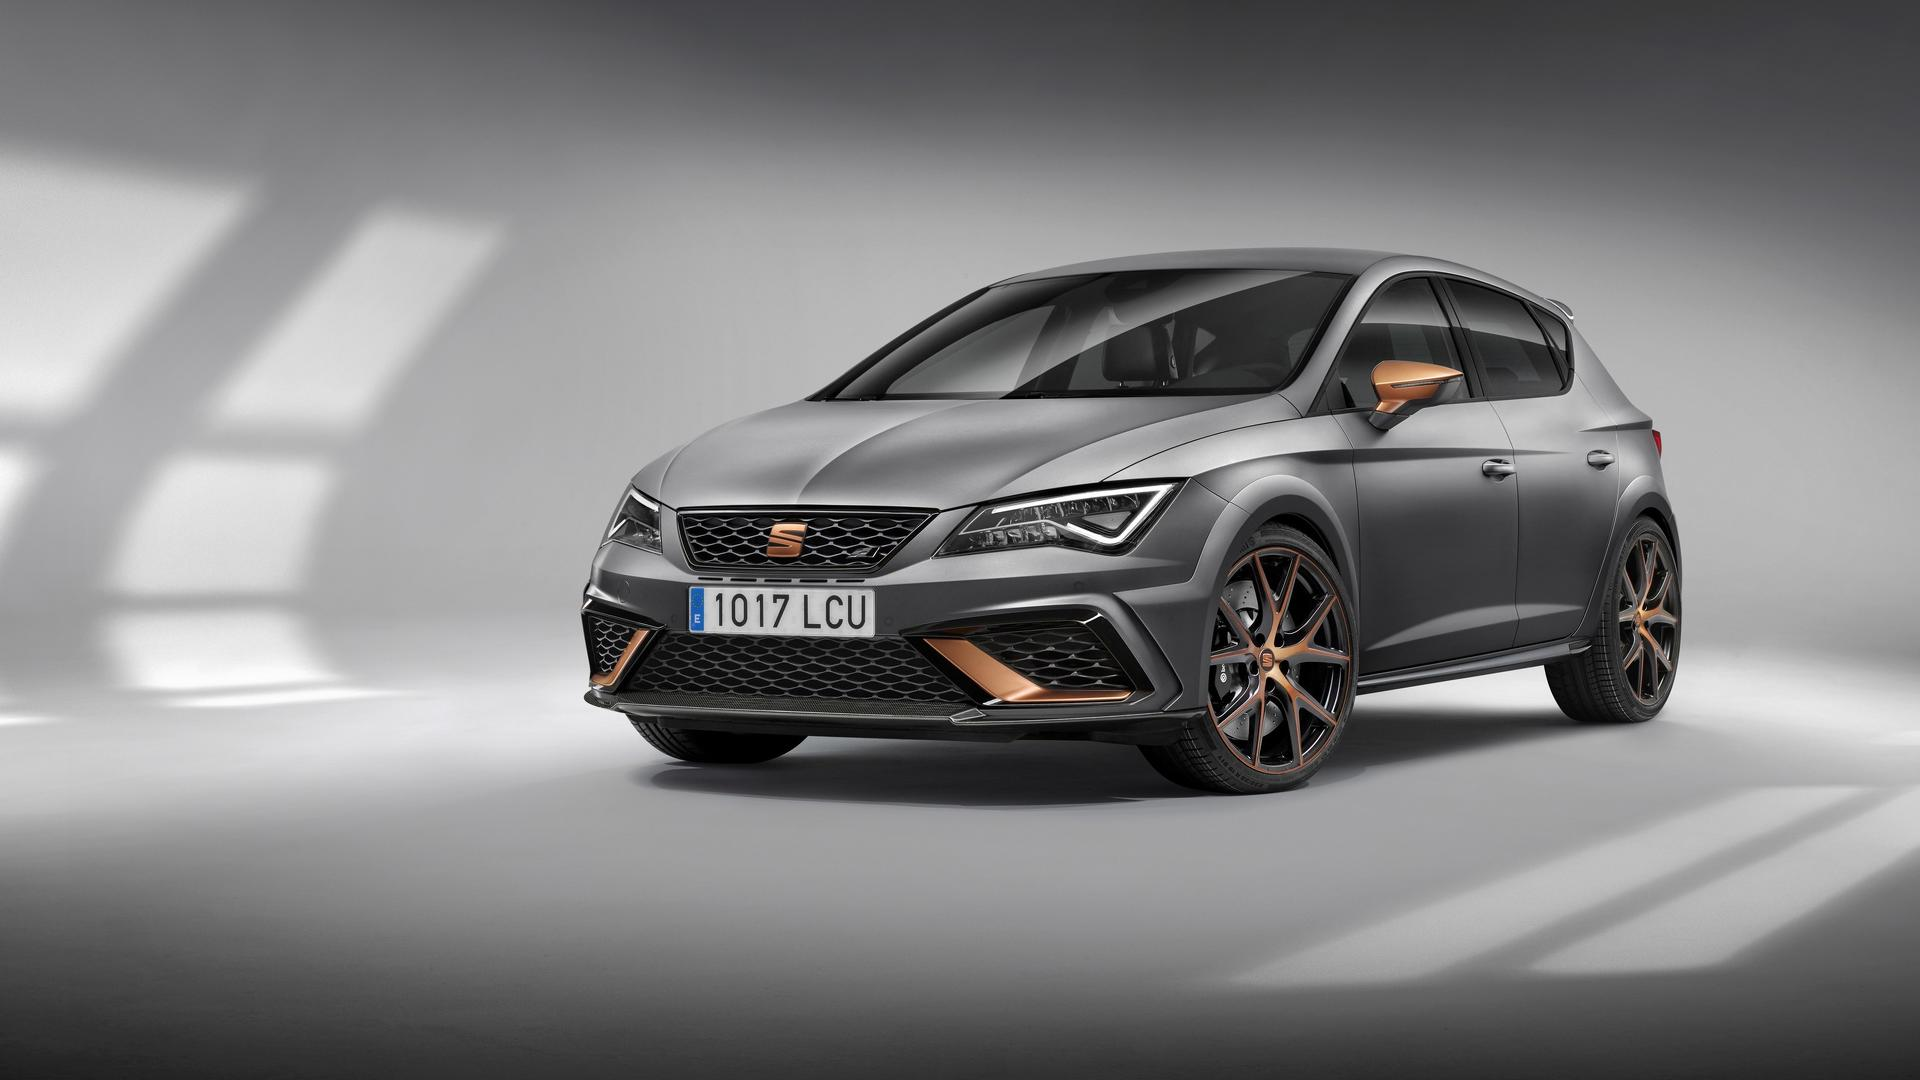 The 306bhp Leon Cupra R is Seat's most powerful vehicle ever